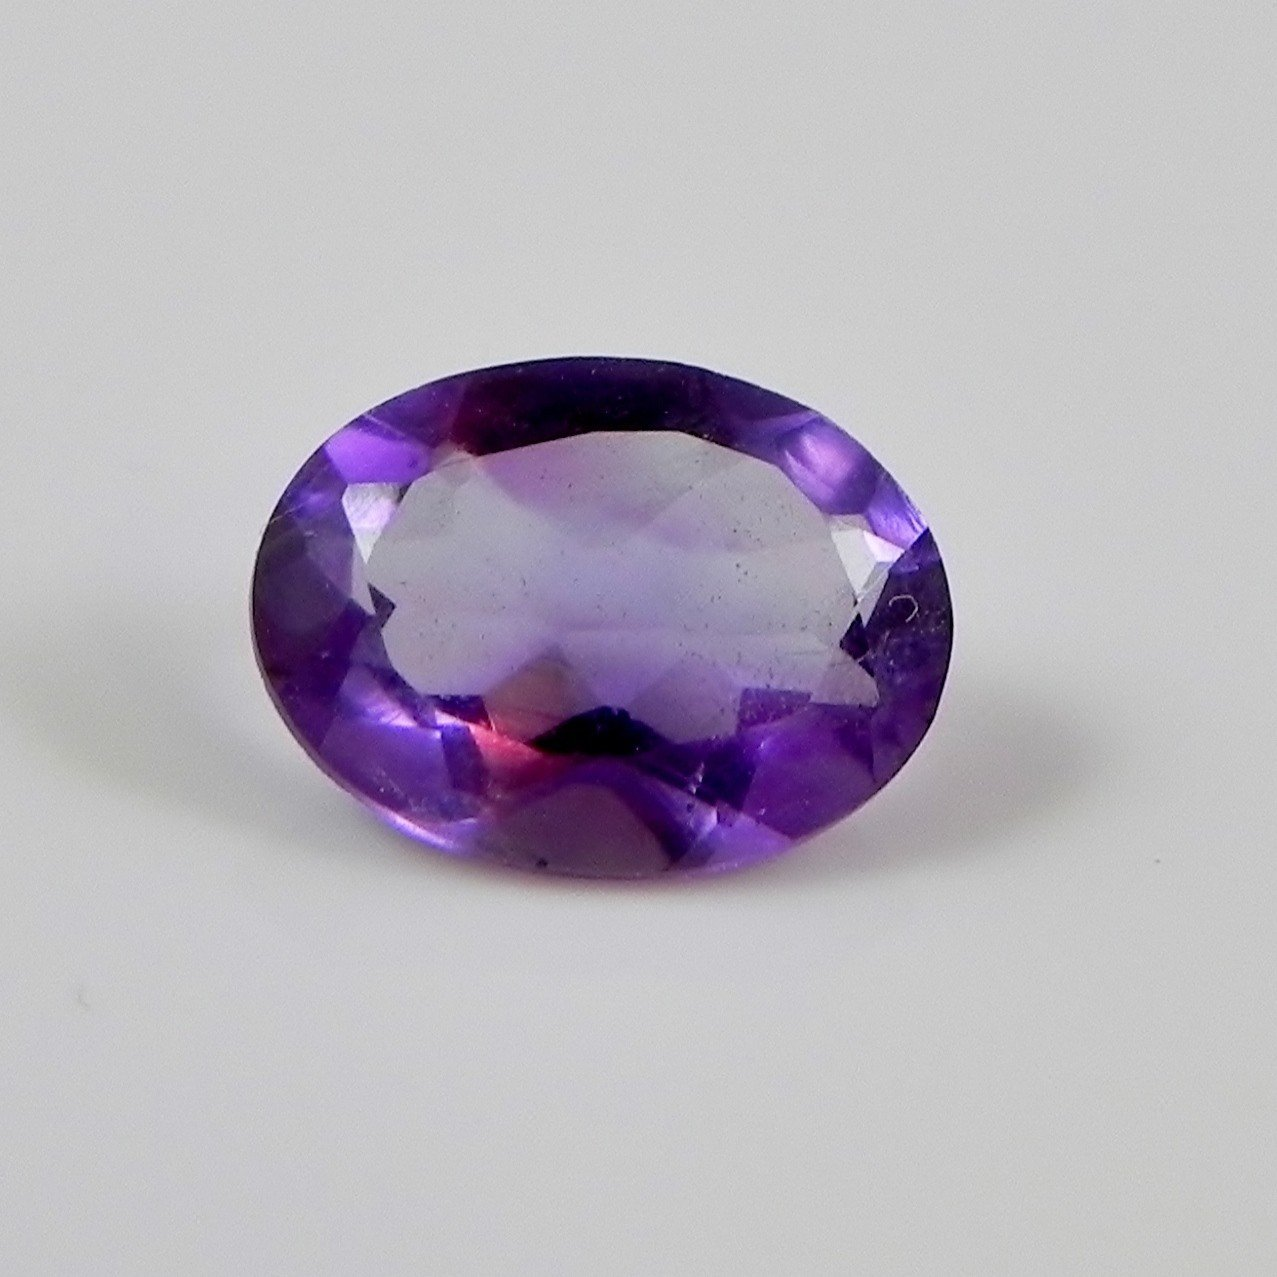 Certified Natural Amethyst AAA Quality 10x8 mm Faceted Oval 2 pcs Pair loose gemstone